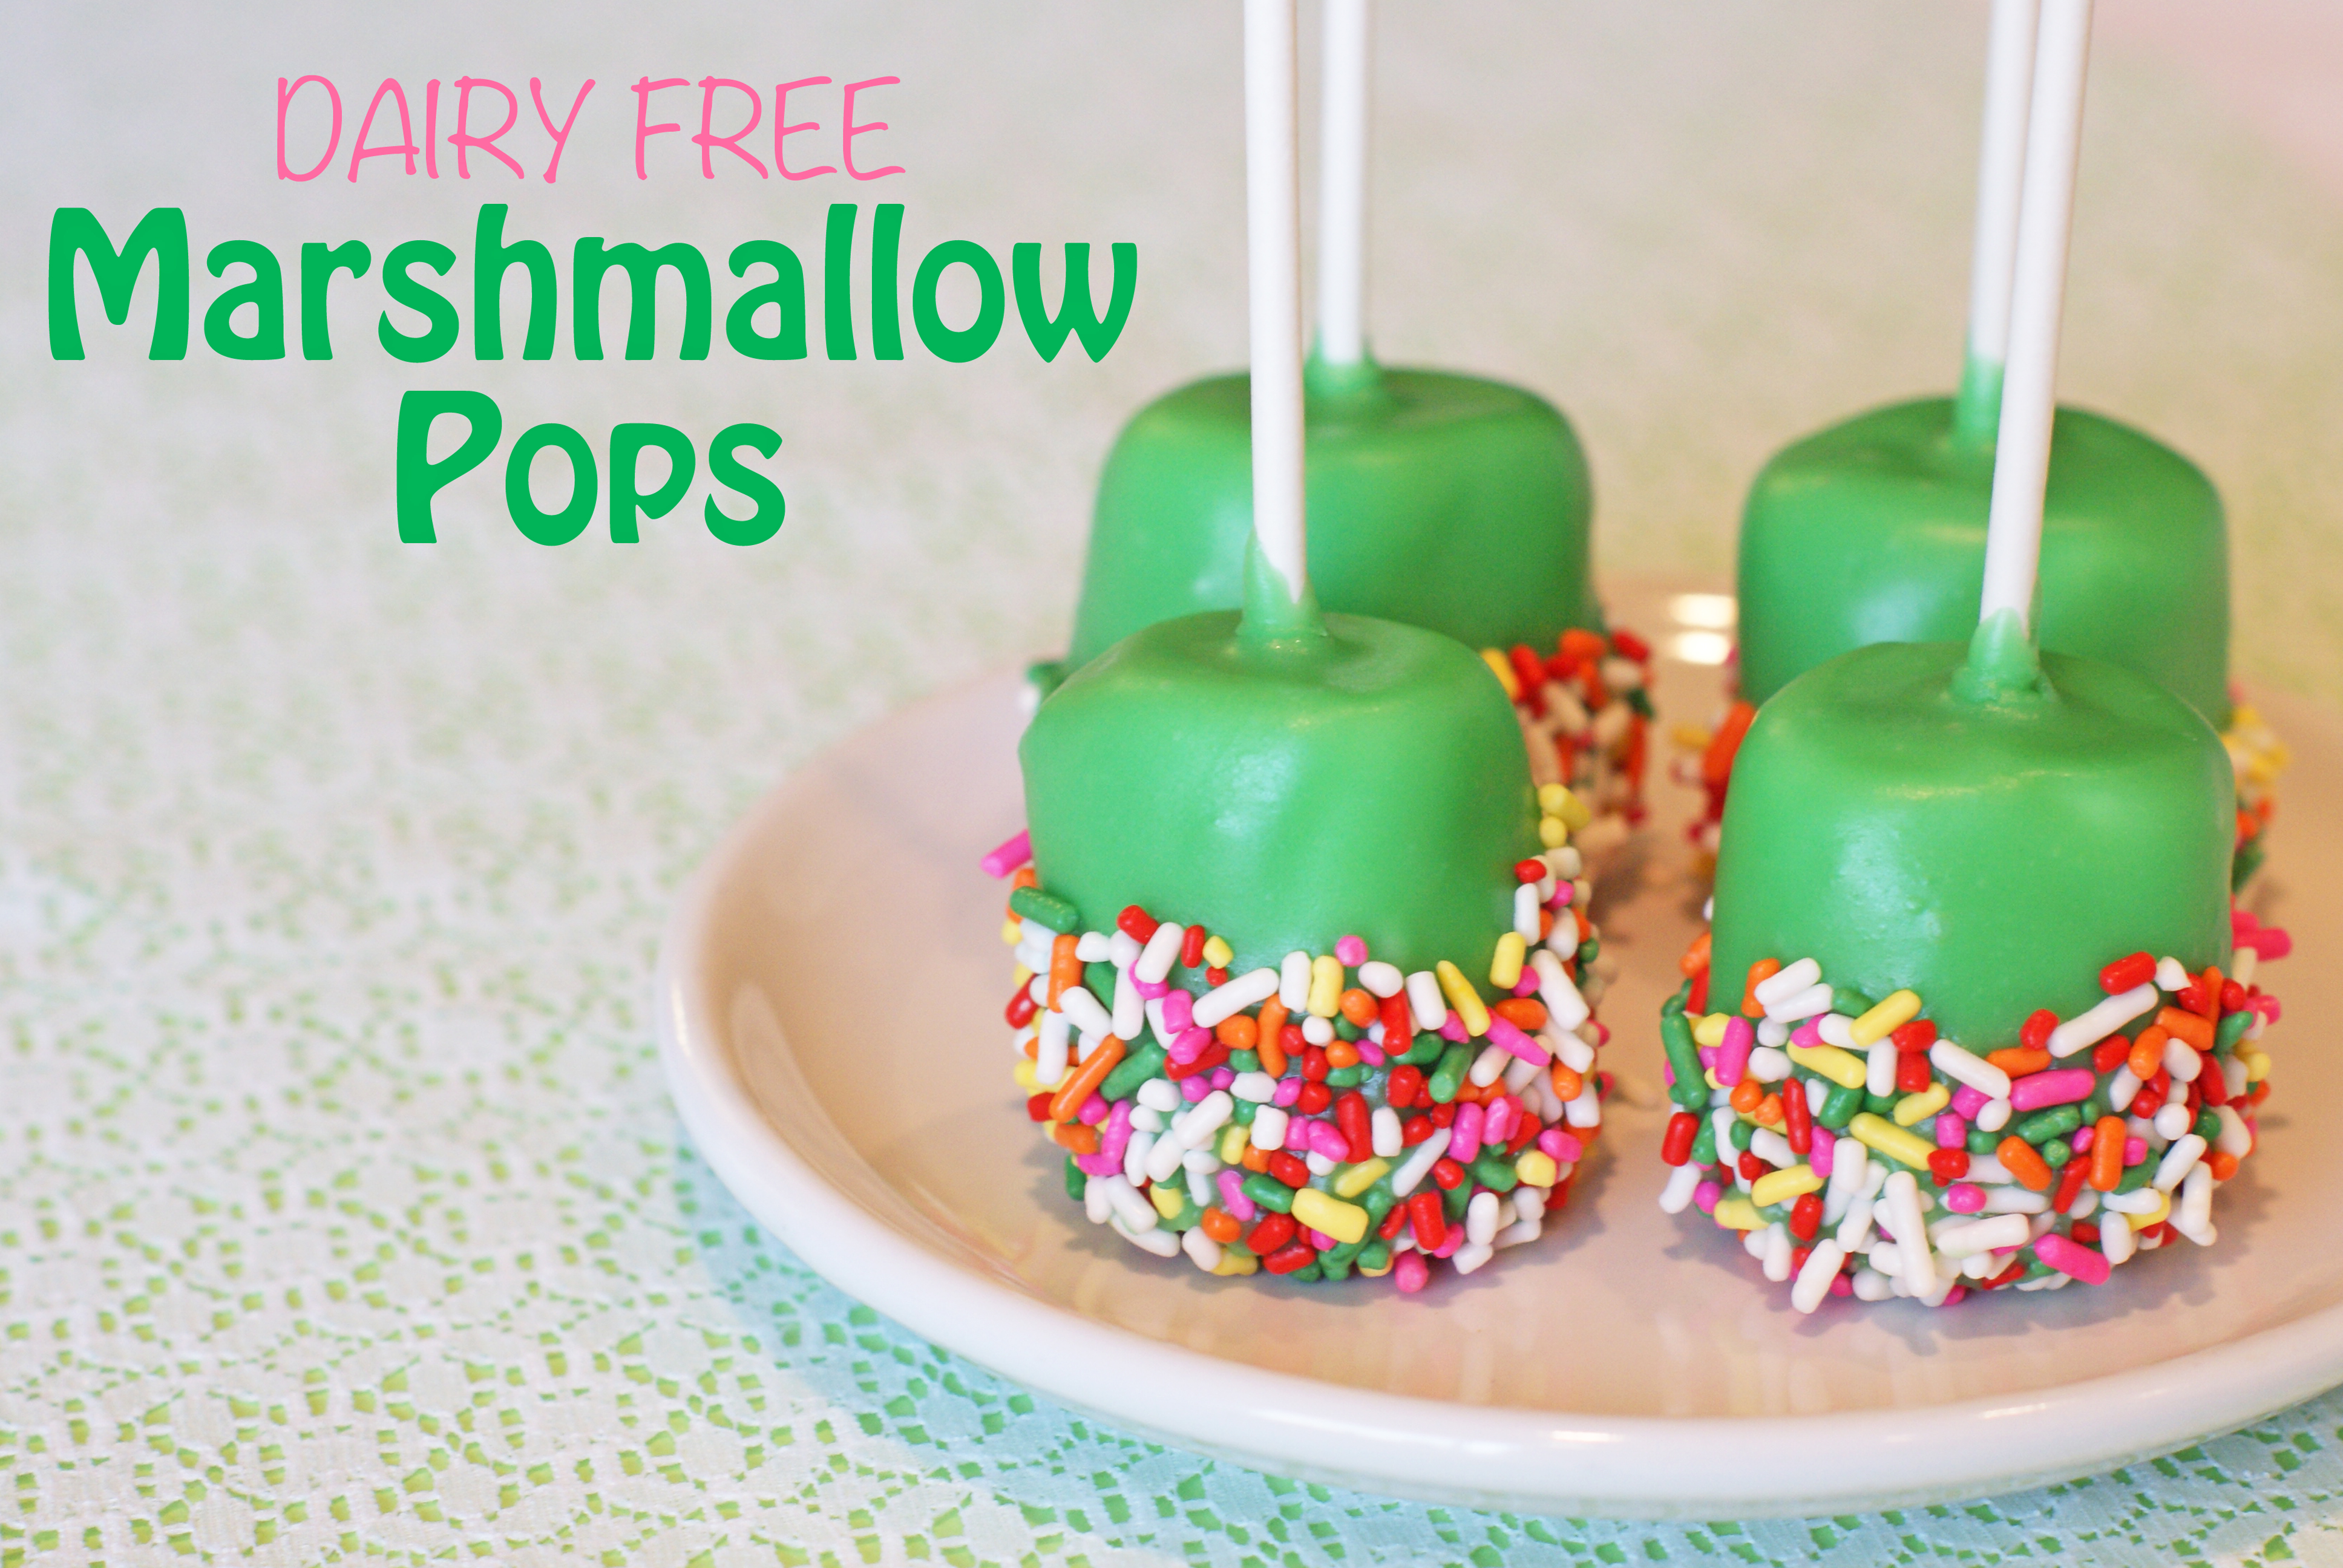 Dairy Free Marshmallow Pops